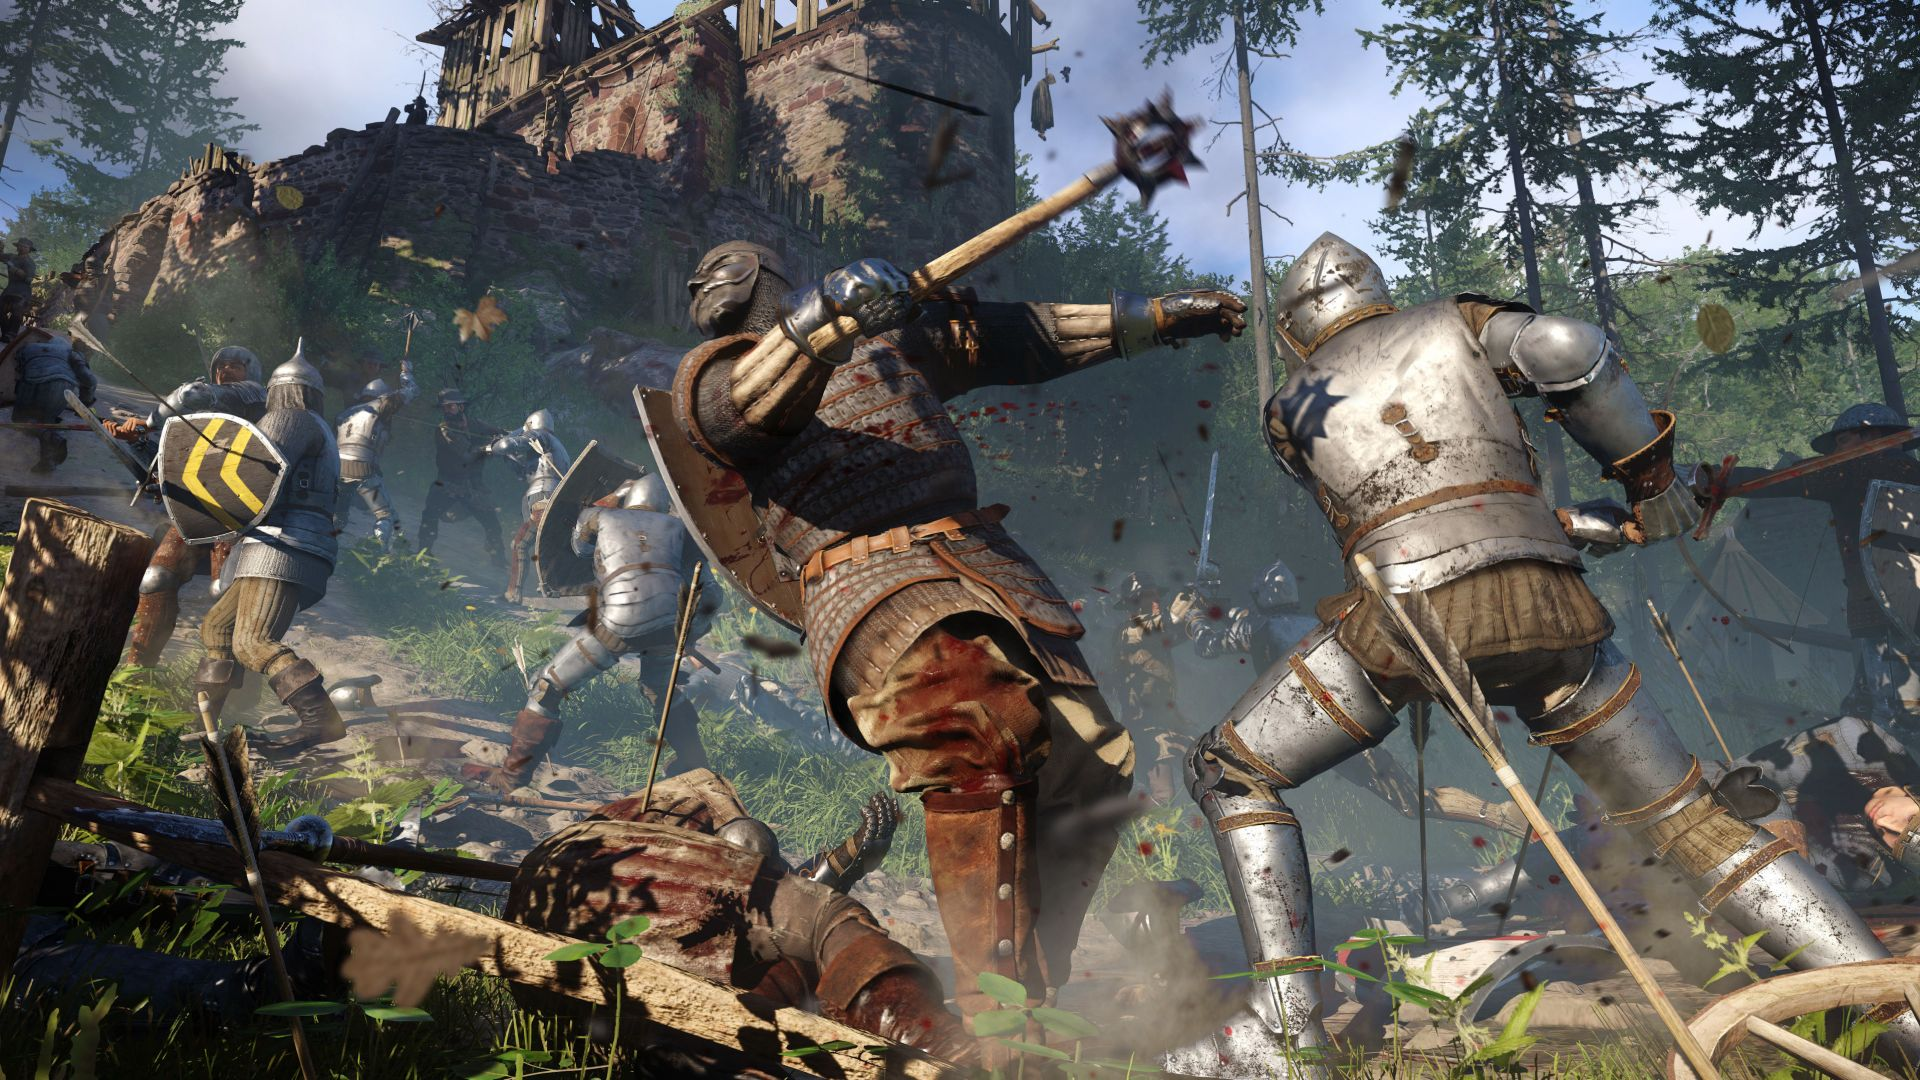 Games That Come With The Ps4 : Wallpaper kingdom come deliverance best games of